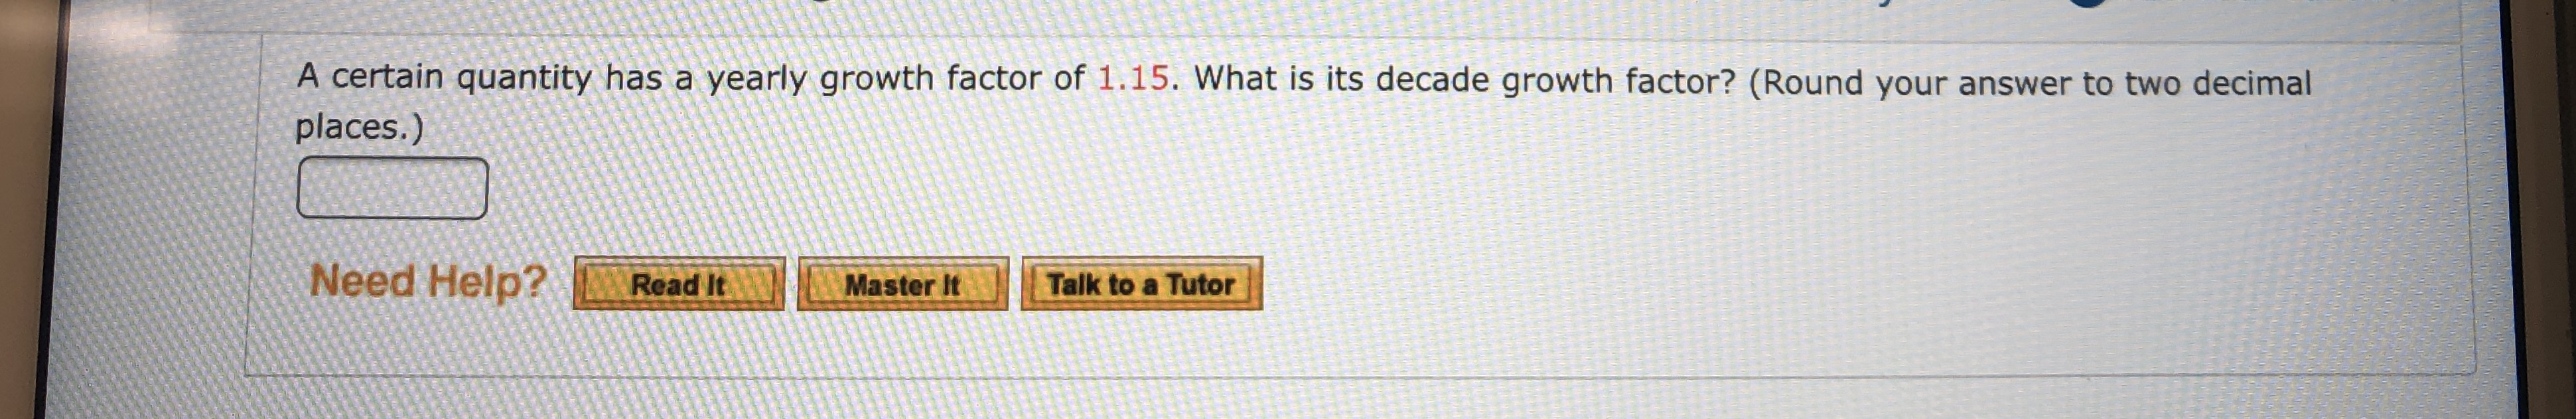 A certain quantity has a yearly growth factor of 1.15. What is its decade growth factor? (Round your answer to two decimal places.) Need Help? Read It Master It Talk to a Tutor